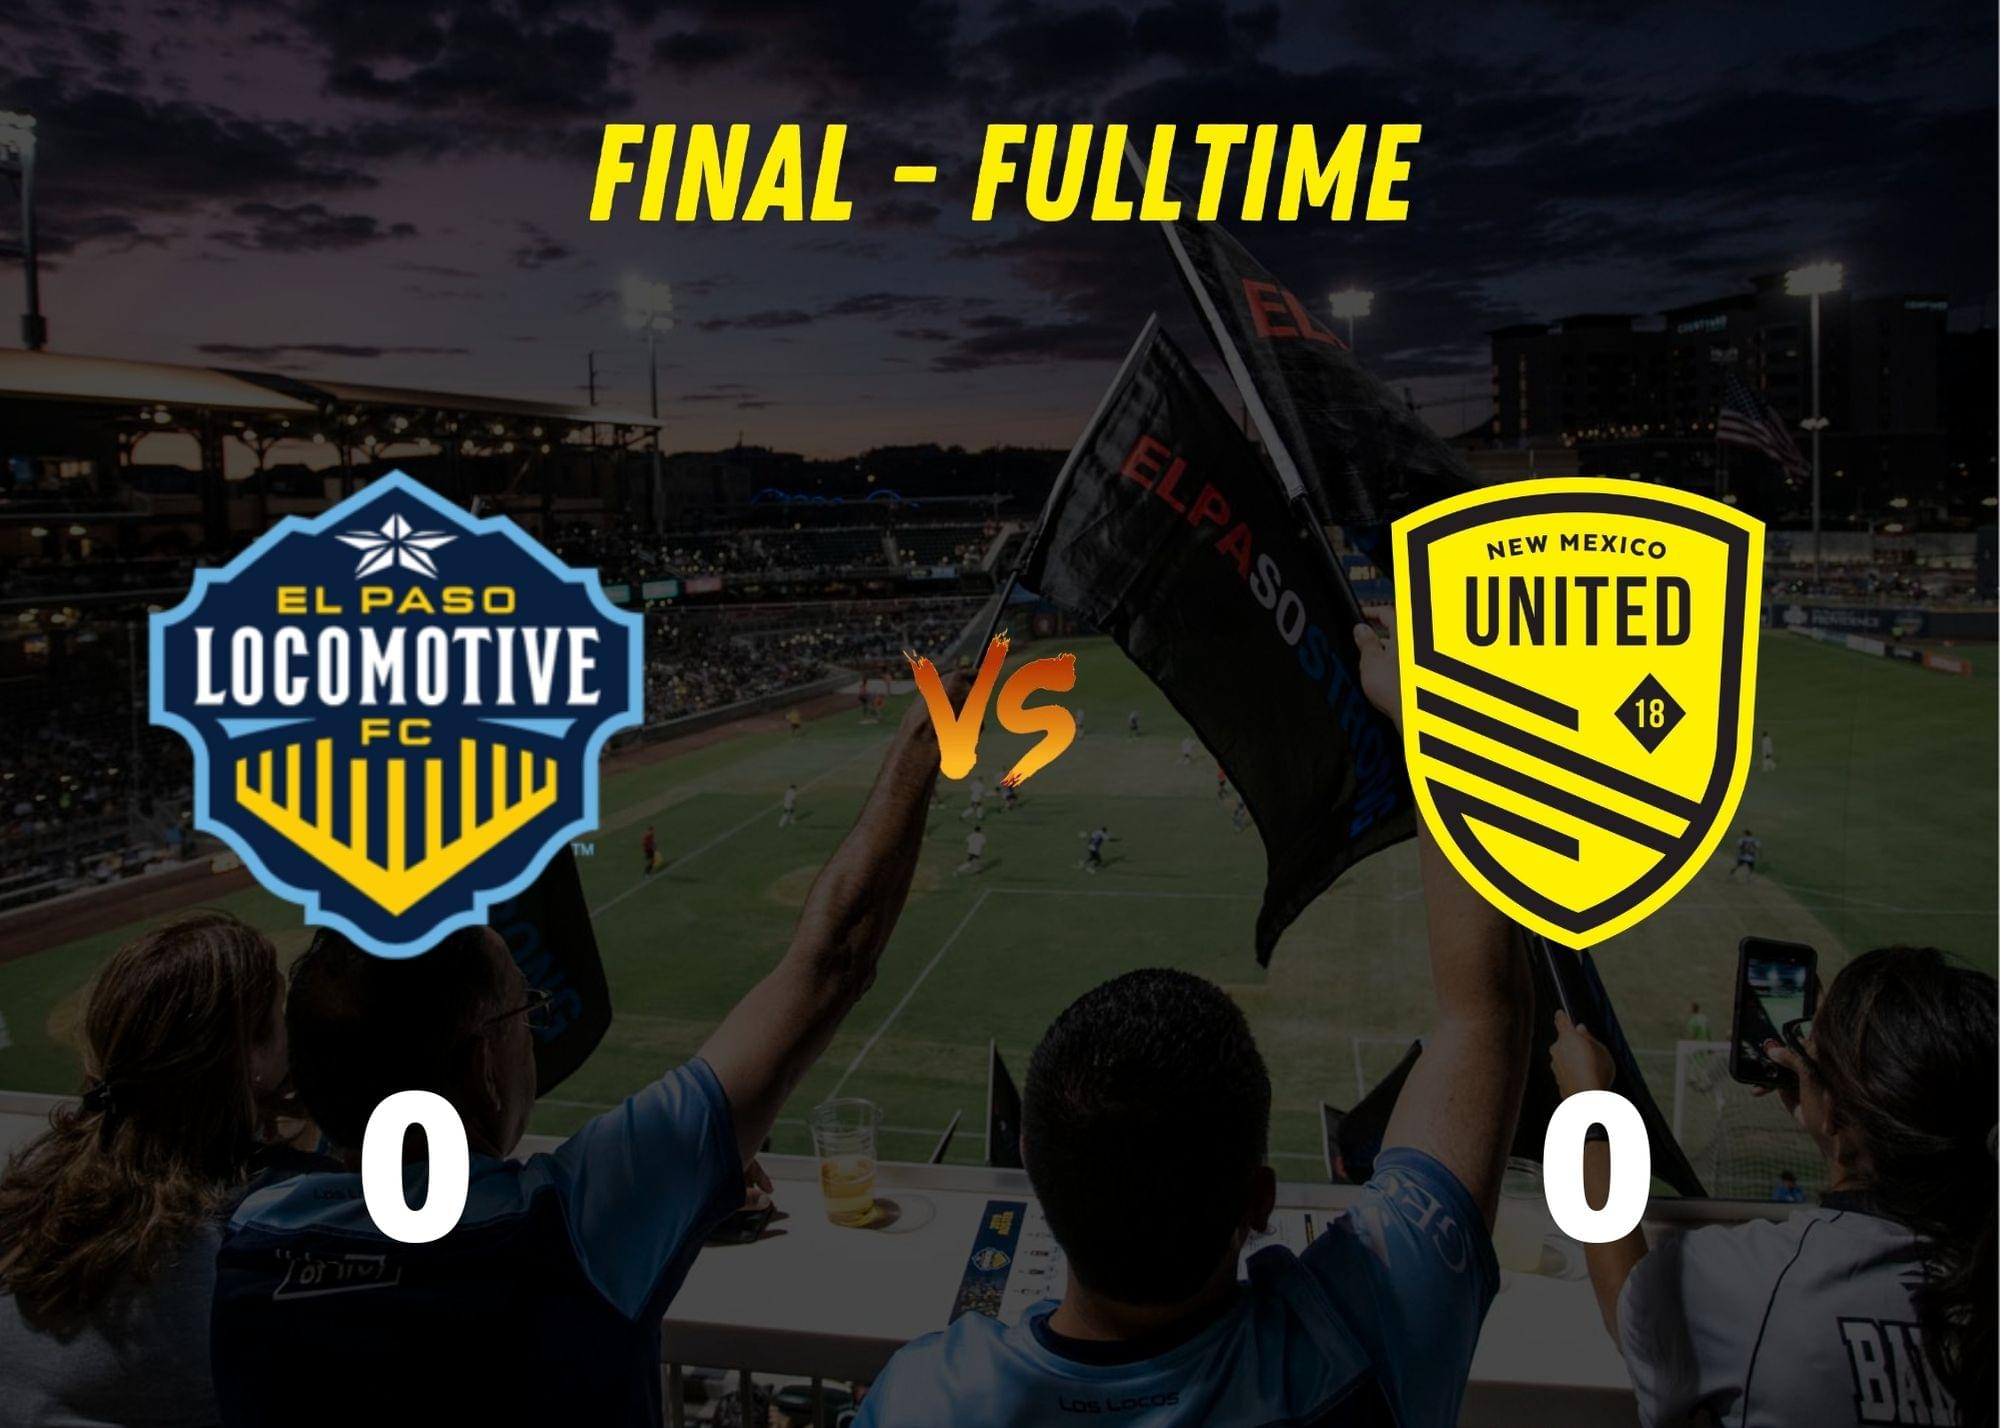 New Mexico United earn 5th clean sheet, draw with El Paso 0-0